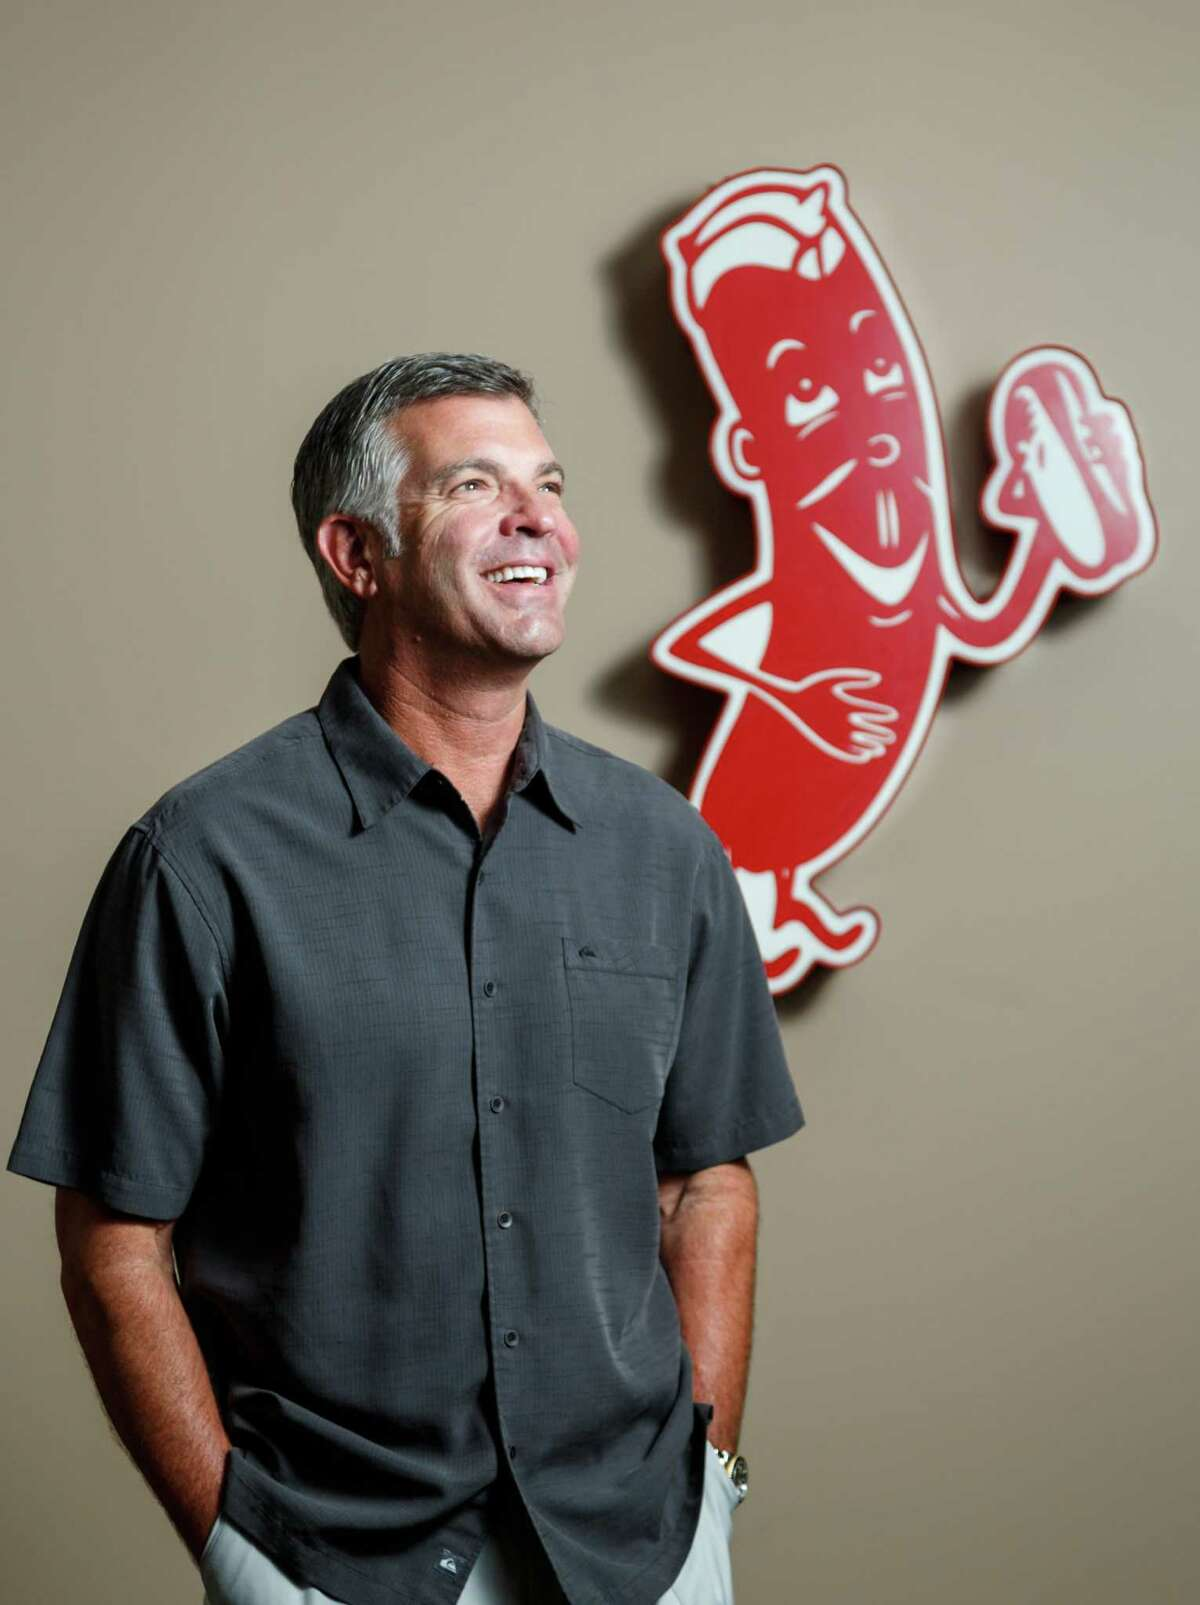 James Coney Island CEO Darrin Straughan poses for a photo at the restaurants' headquarters, Tuesday, June 18, 2013, in Houston. James Coney Island is celebrating its 90th anniversary this year and will soon announce several new concepts that will include more upscale restaurants modernizing the born-in-Houston hot dog chain. ( Michael Paulsen / Houston Chronicle )